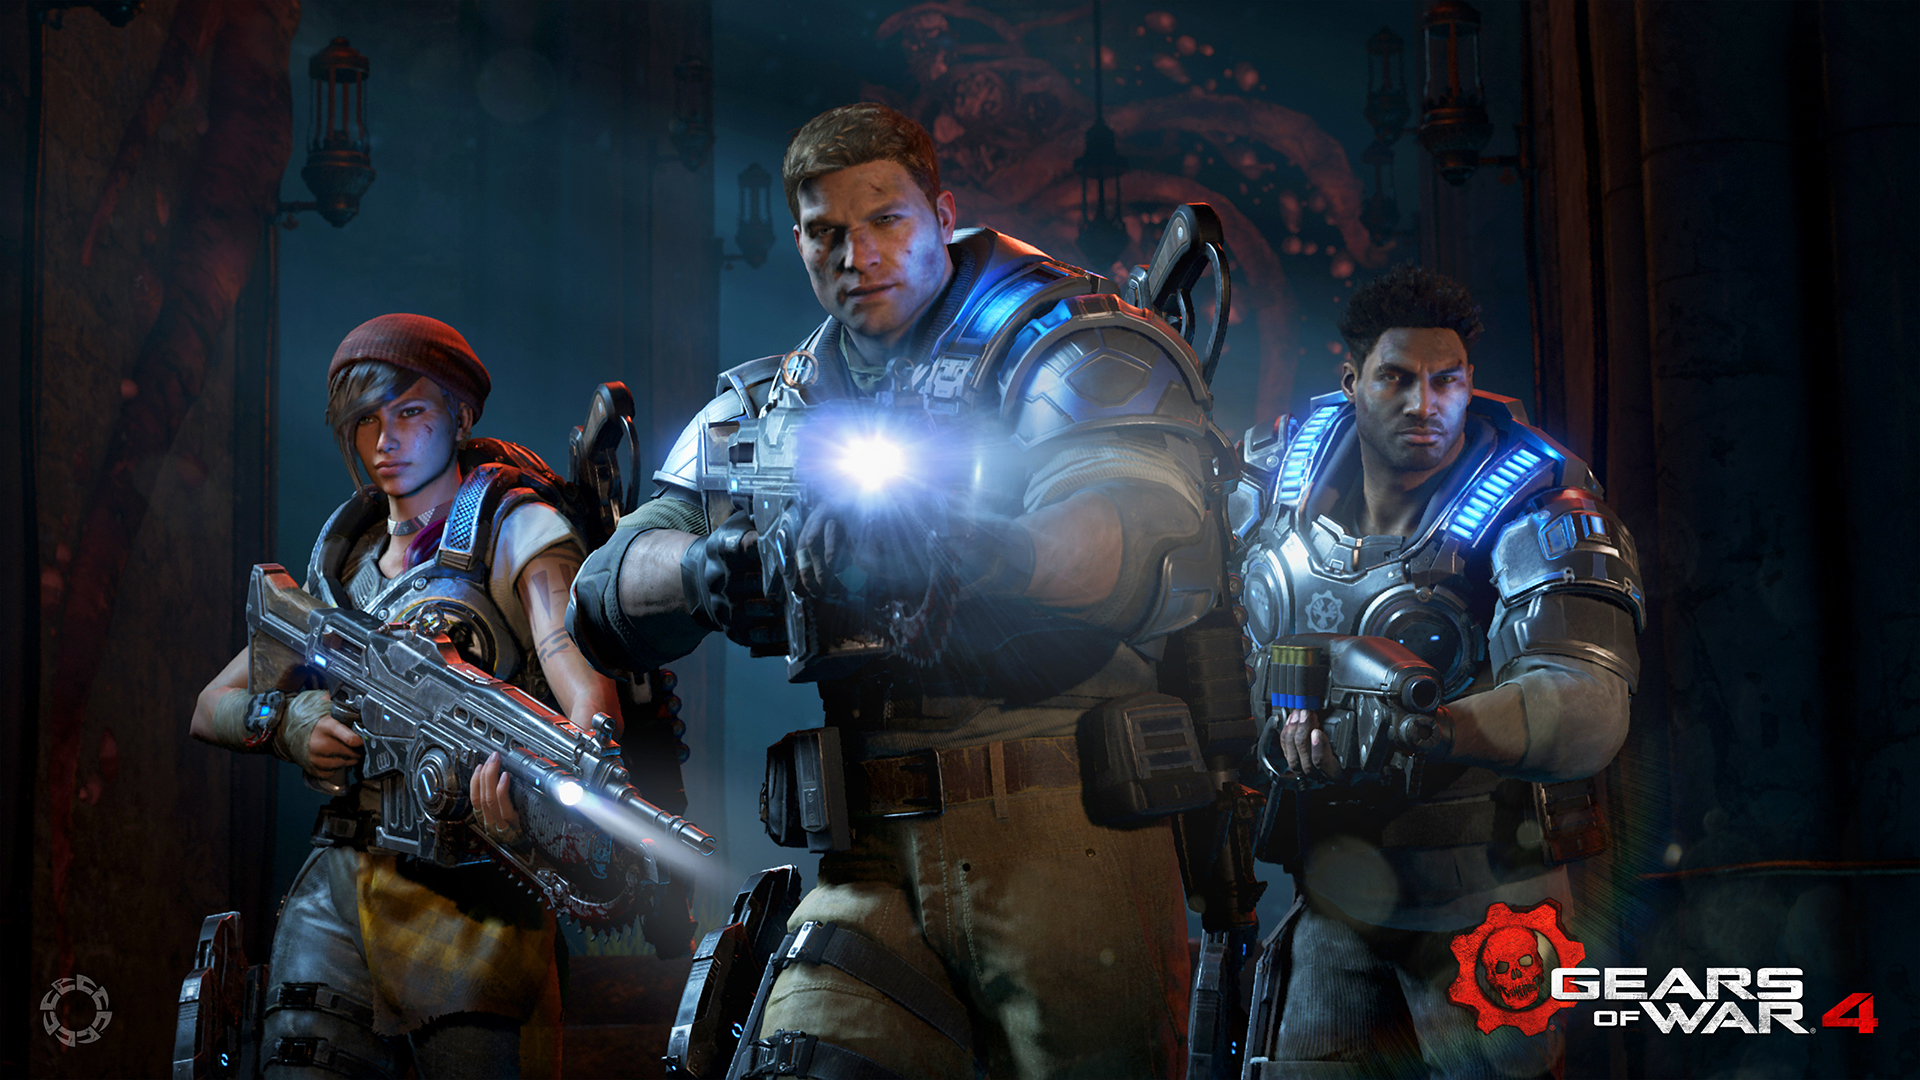 James Gears Of War - HD Wallpaper